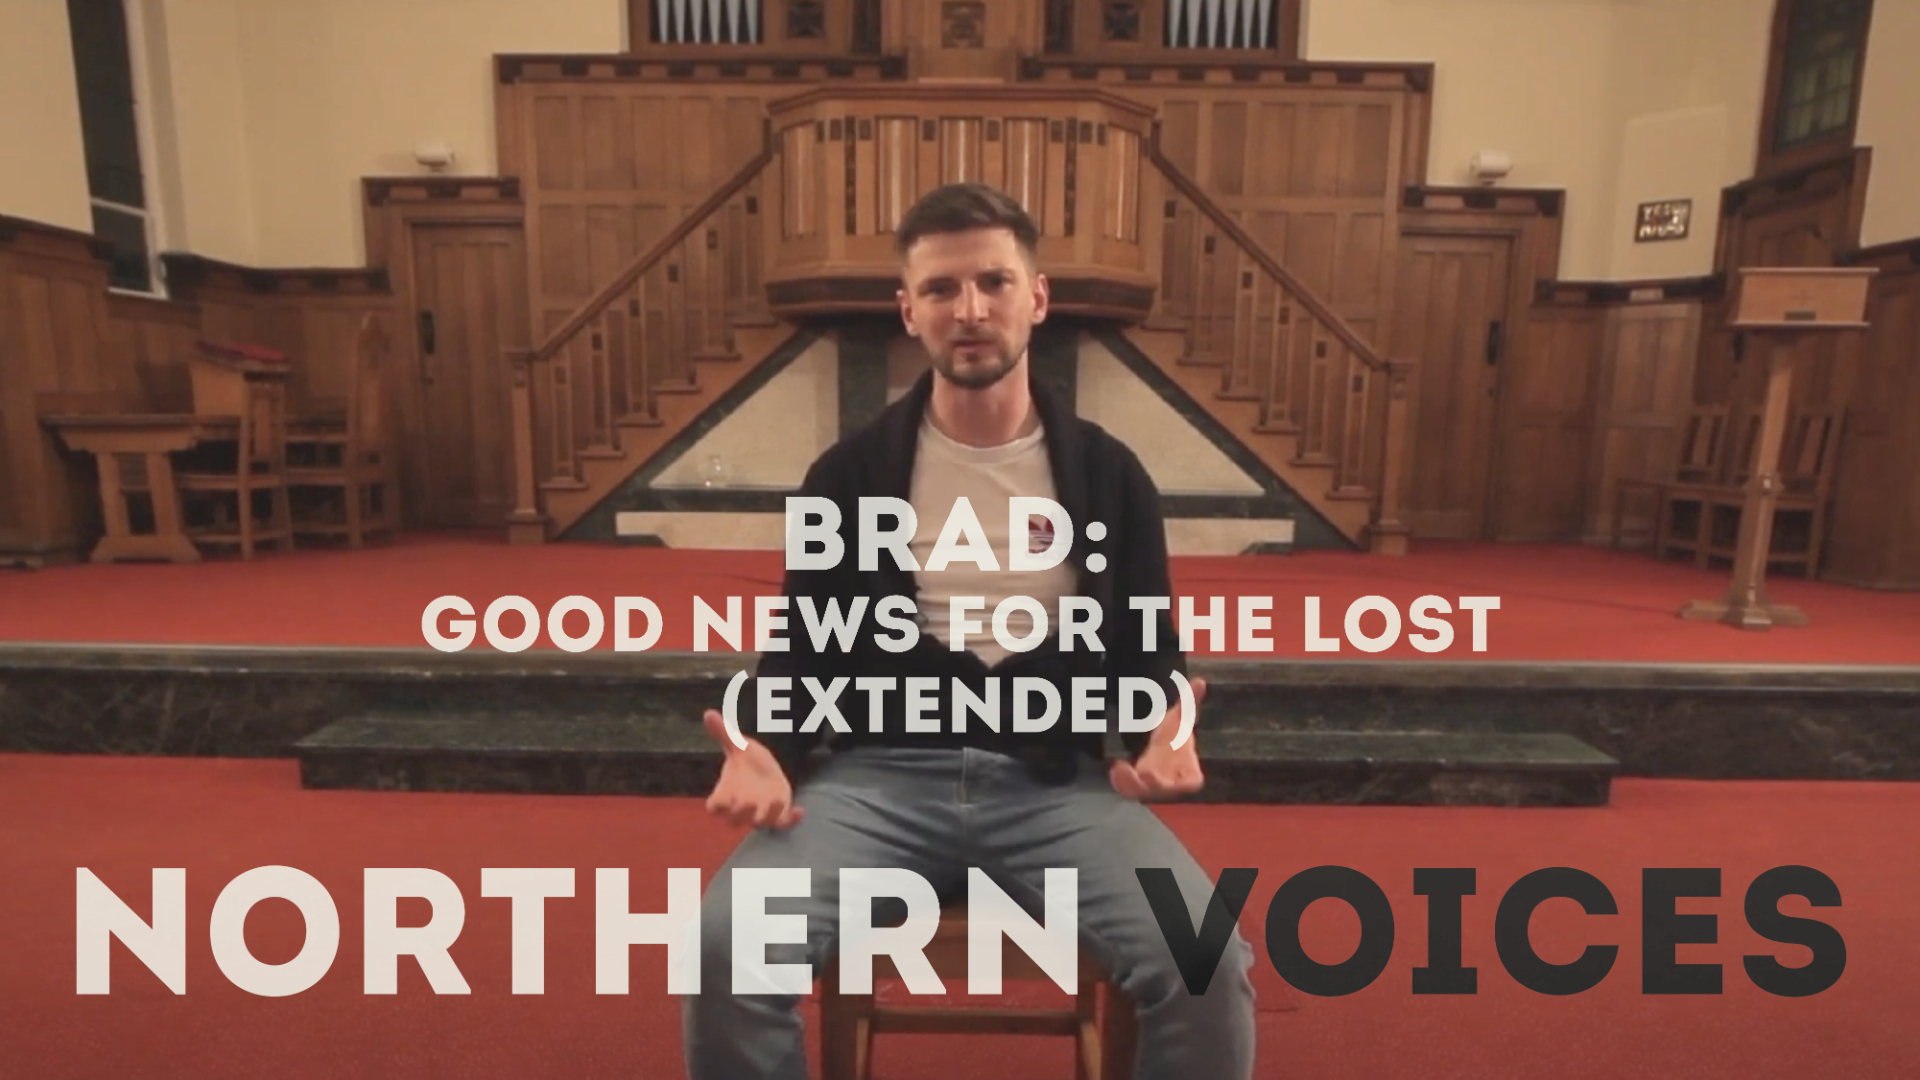 Northern Voices: Good News for the Lost (Extended)